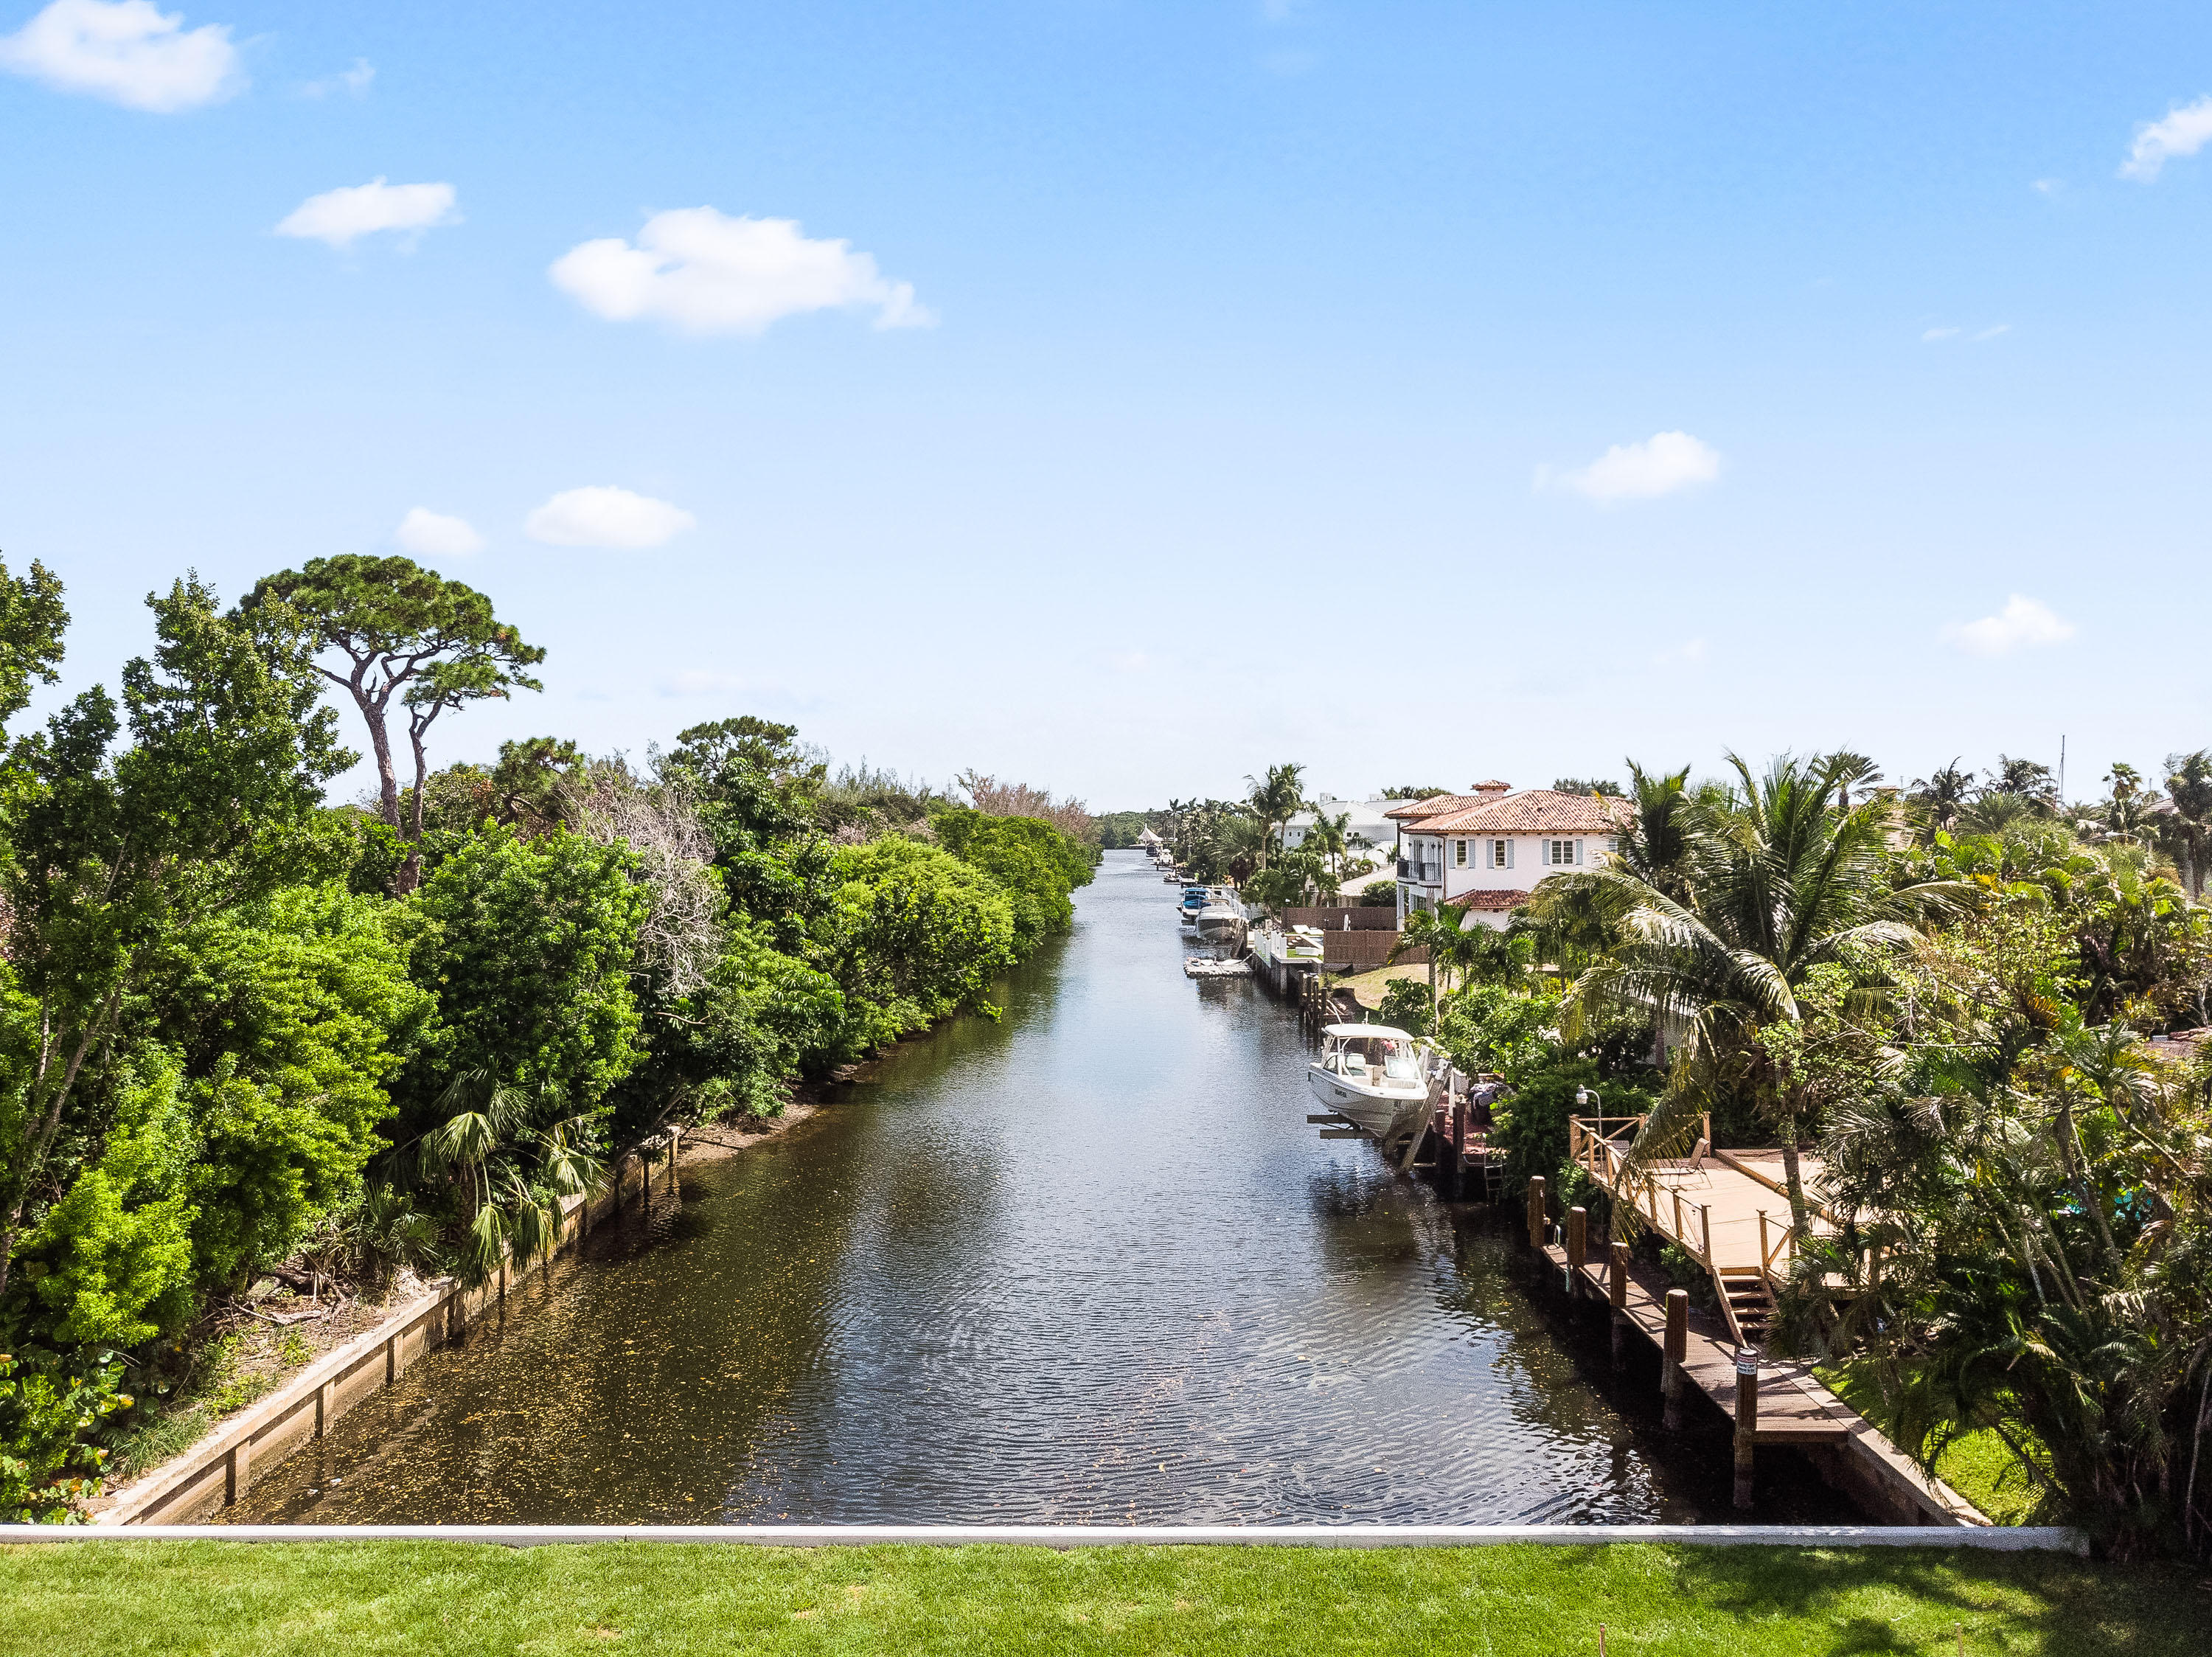 1425 5th Avenue, Boca Raton, Florida 33432, 3 Bedrooms Bedrooms, ,2 BathroomsBathrooms,Single Family,For Sale,Golden Triangle,5th,RX-10469990